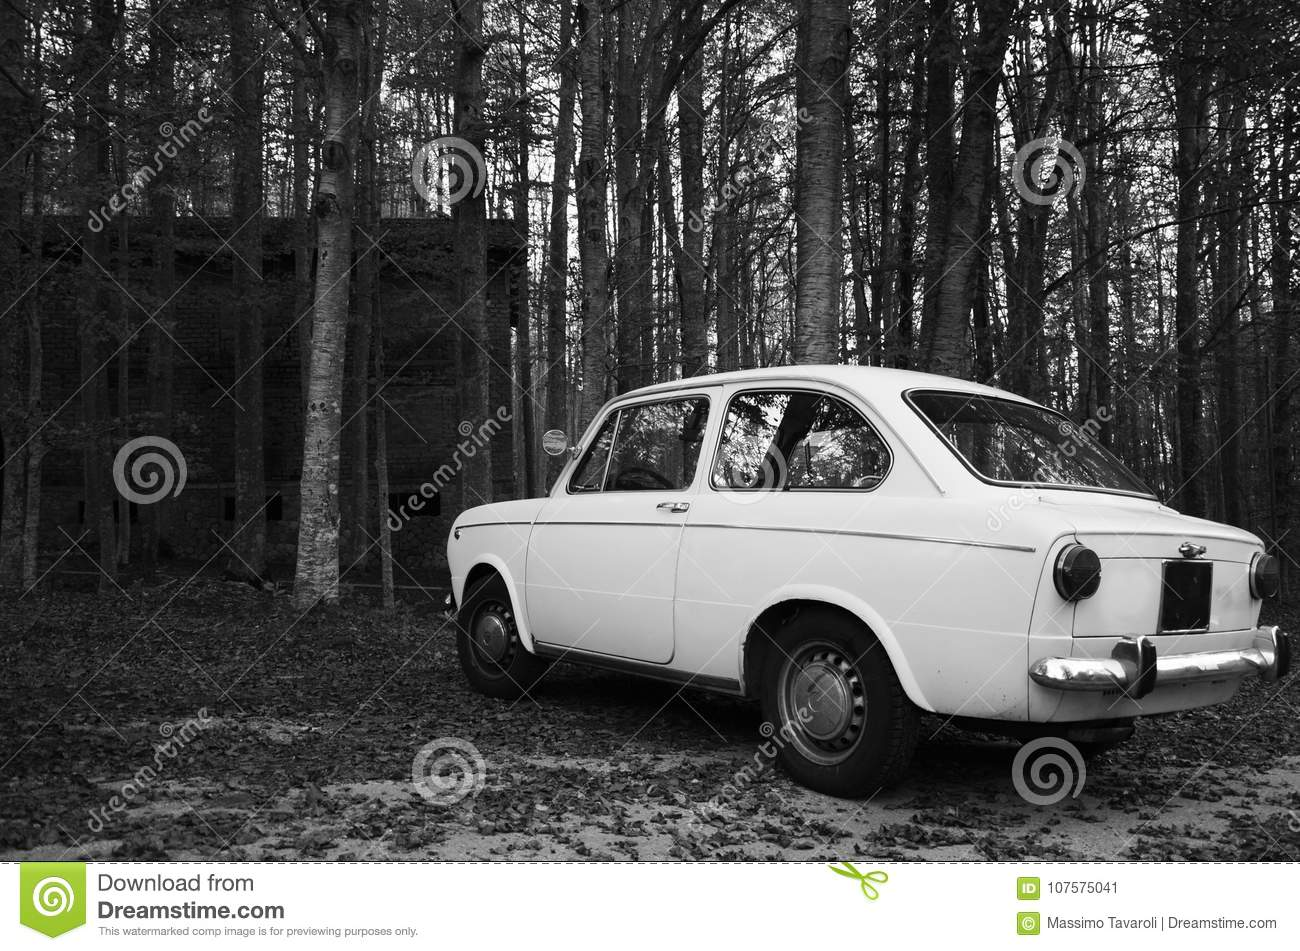 Old School Car In Forest, Italy Stock Image - Image of italy, trees ...